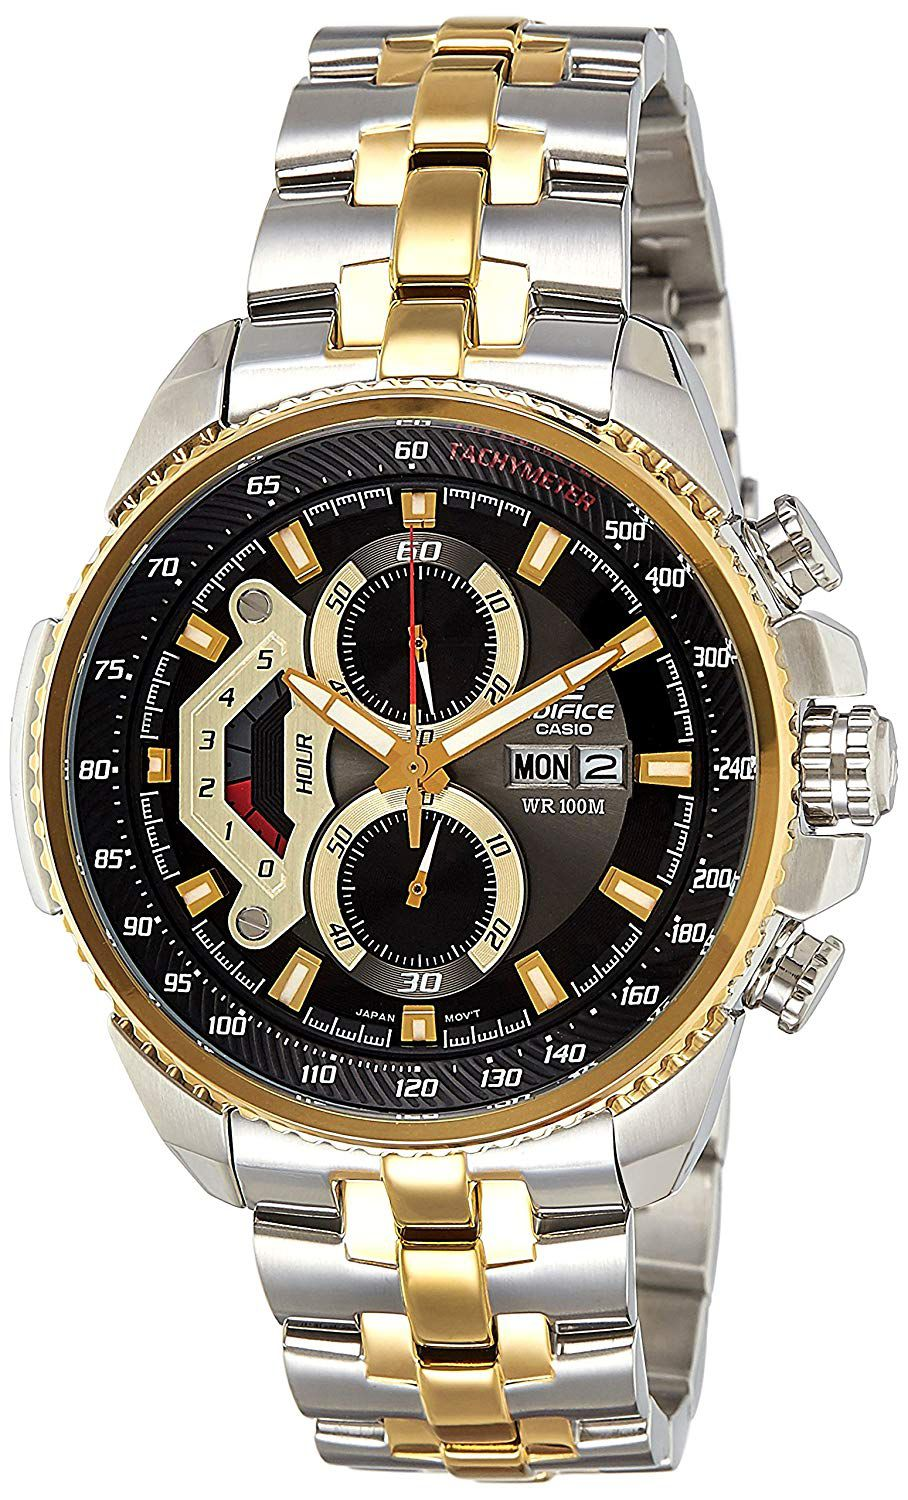 59ec7e11daa Casio Original Edifice Chronograph Watches  Buy Men Fashion Black Silver  and Gold stainless Chronograph Watch Online in India at Snapdeal